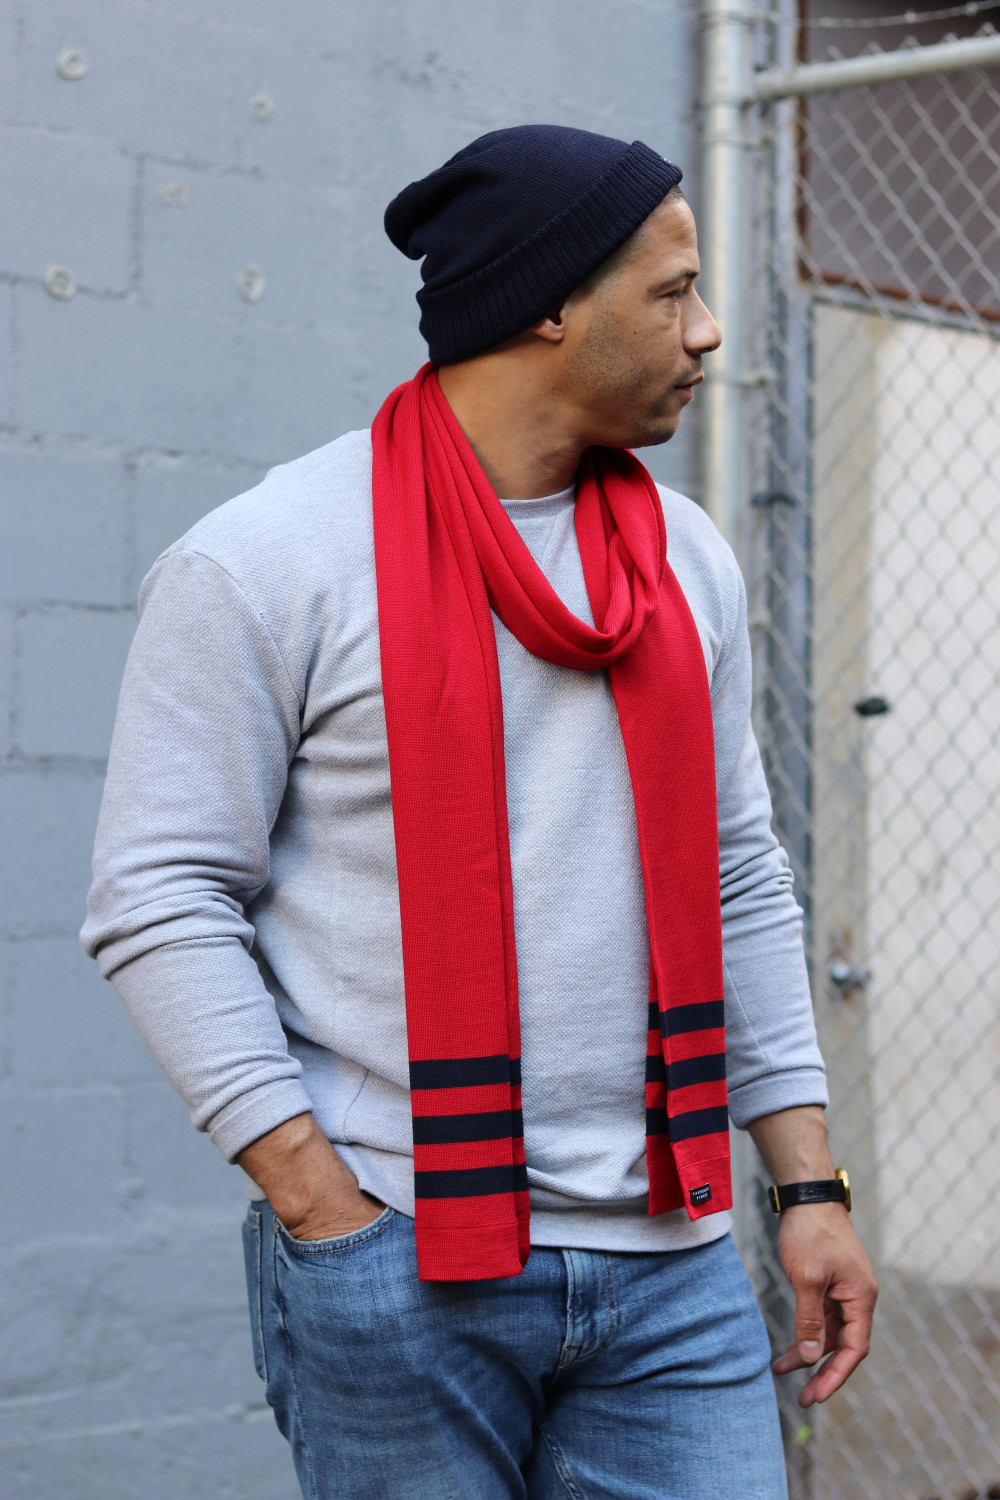 Beanies & Scarves Lookbook